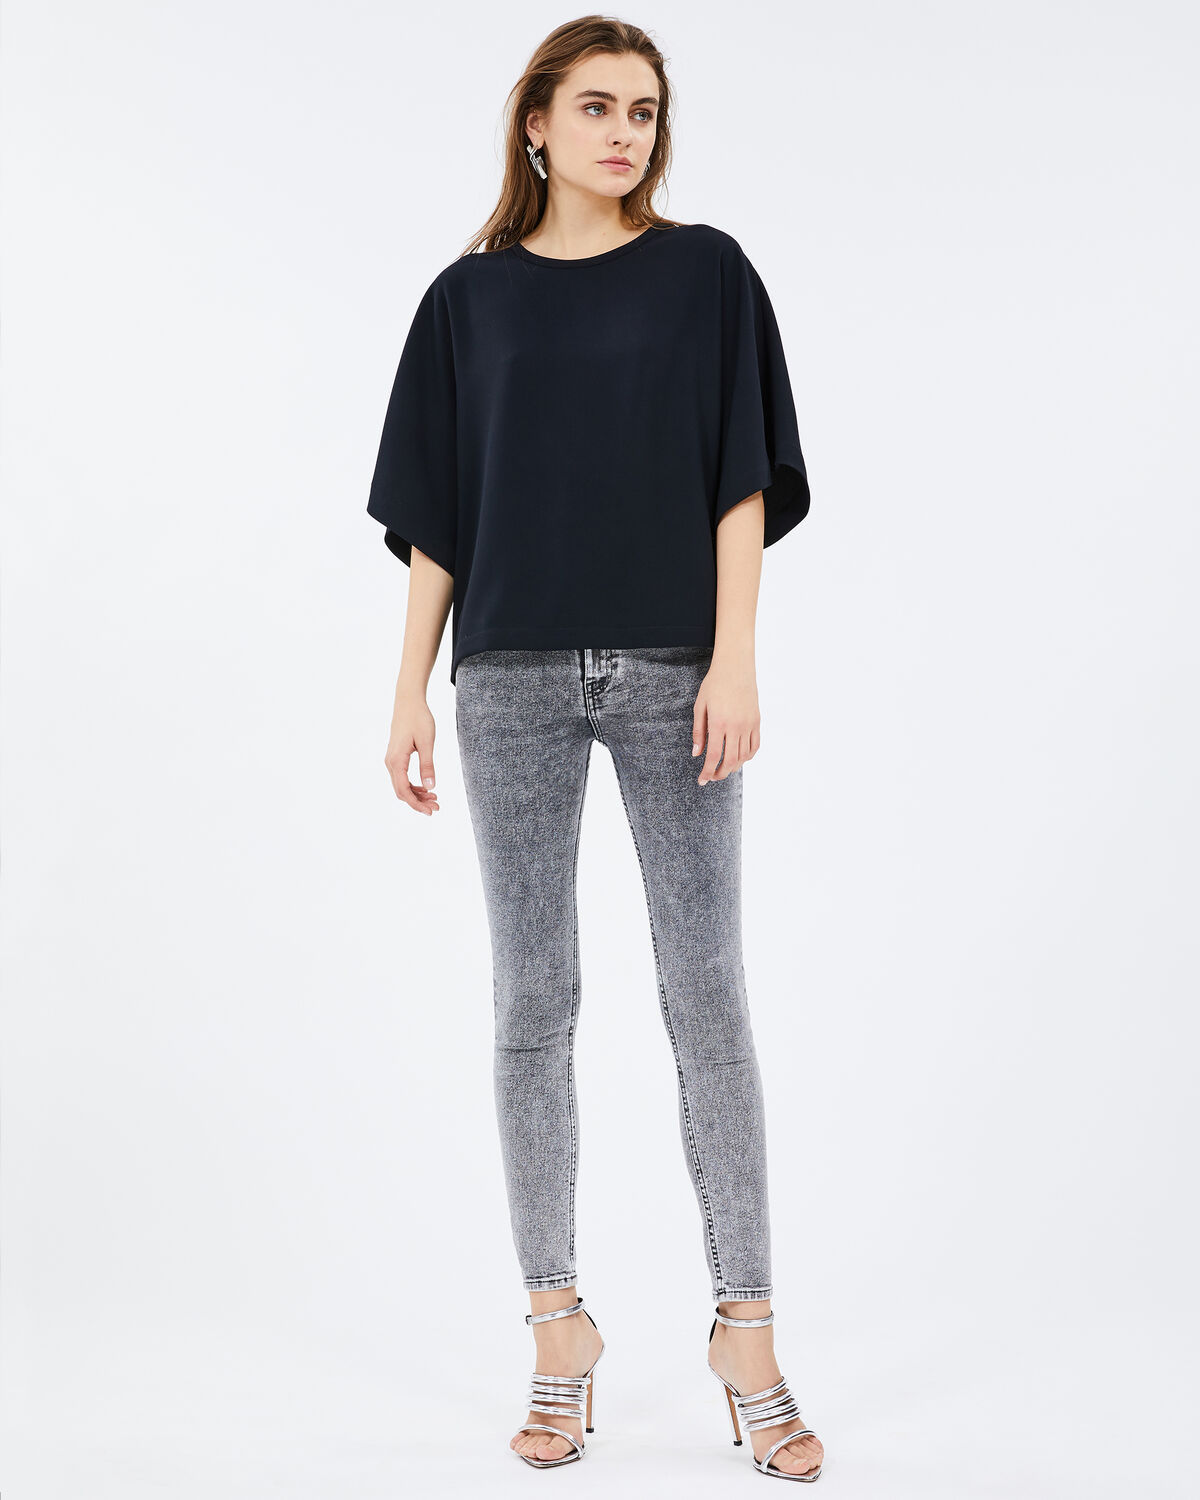 Fiori Top Black by IRO Paris